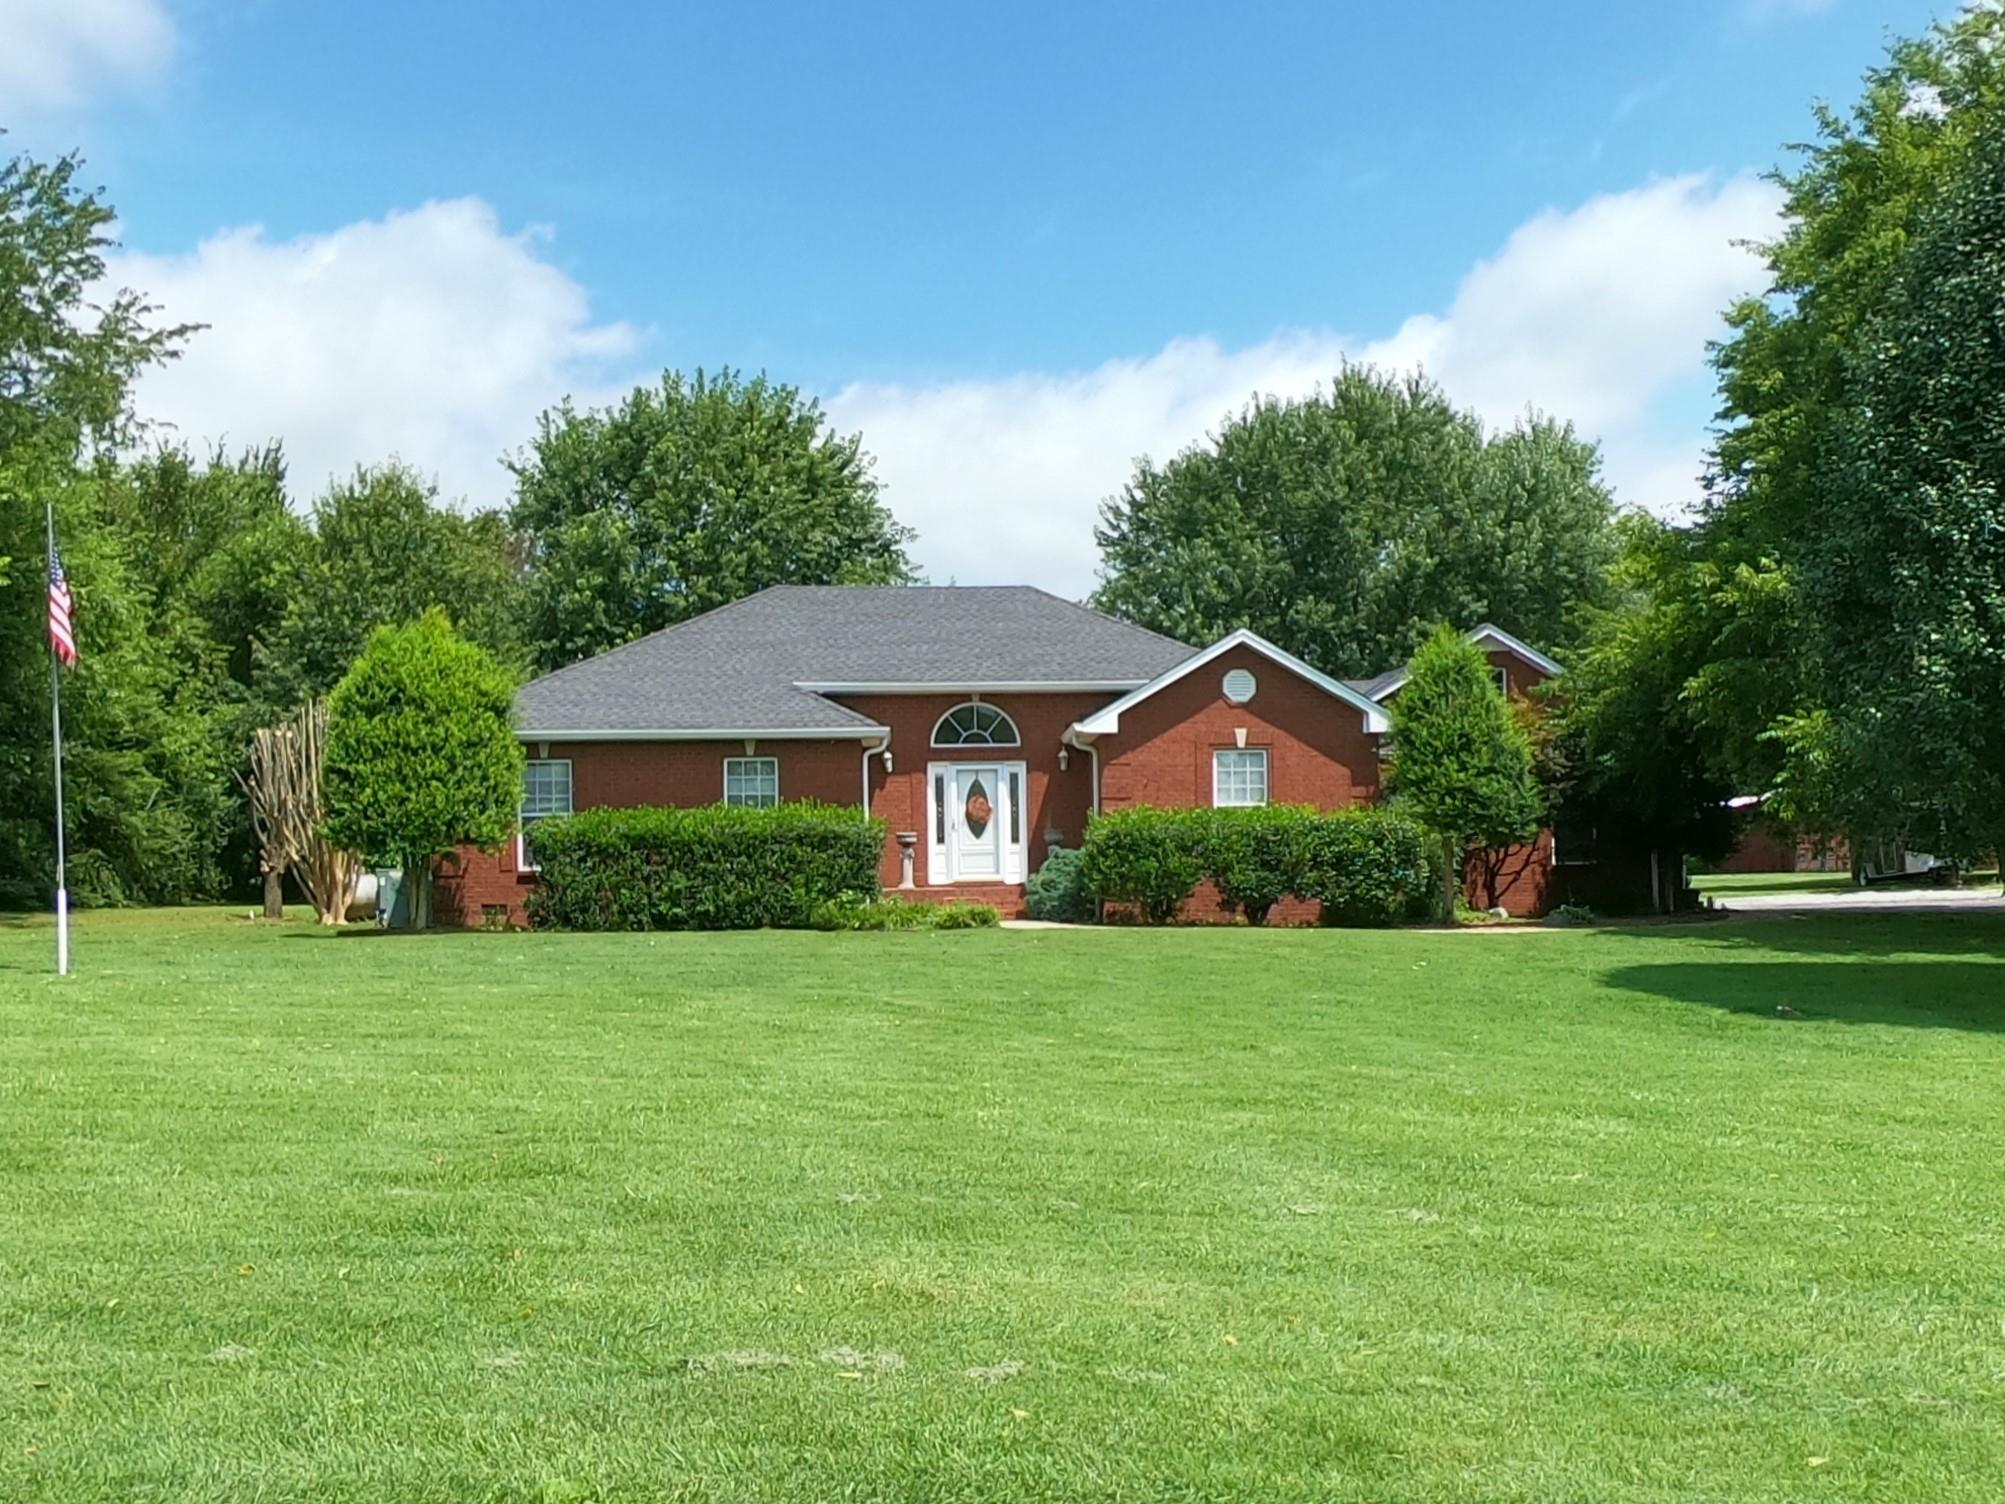 4044 76 Hwy, Cottontown, TN 37048 - Cottontown, TN real estate listing